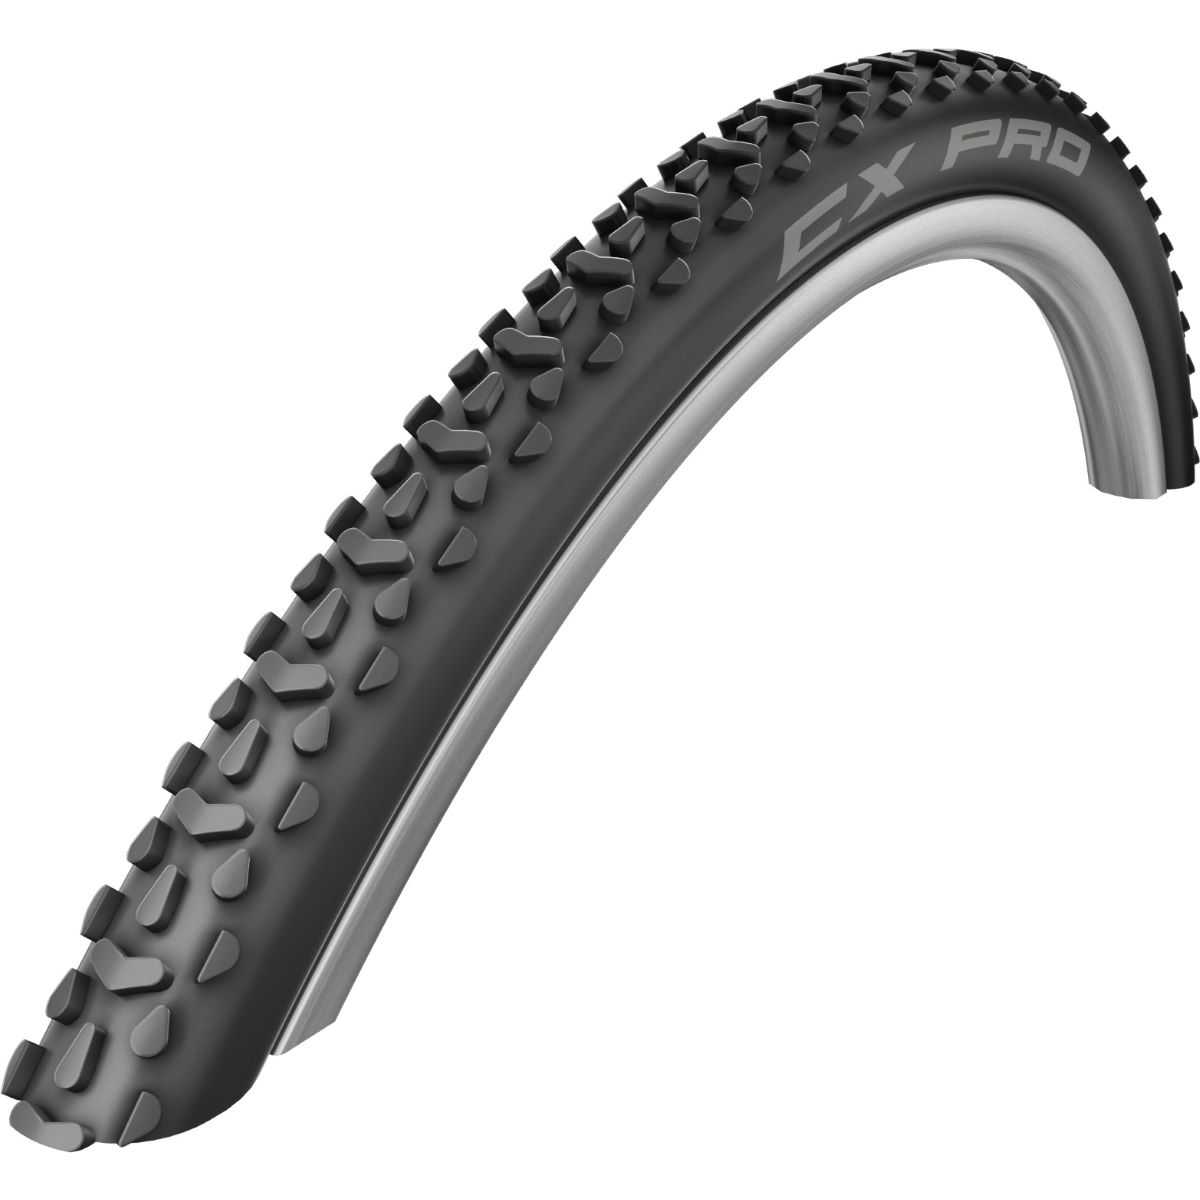 Pneu de cyclo-cross Schwalbe CX Pro - 26' 1.35' Wire Bead Noir